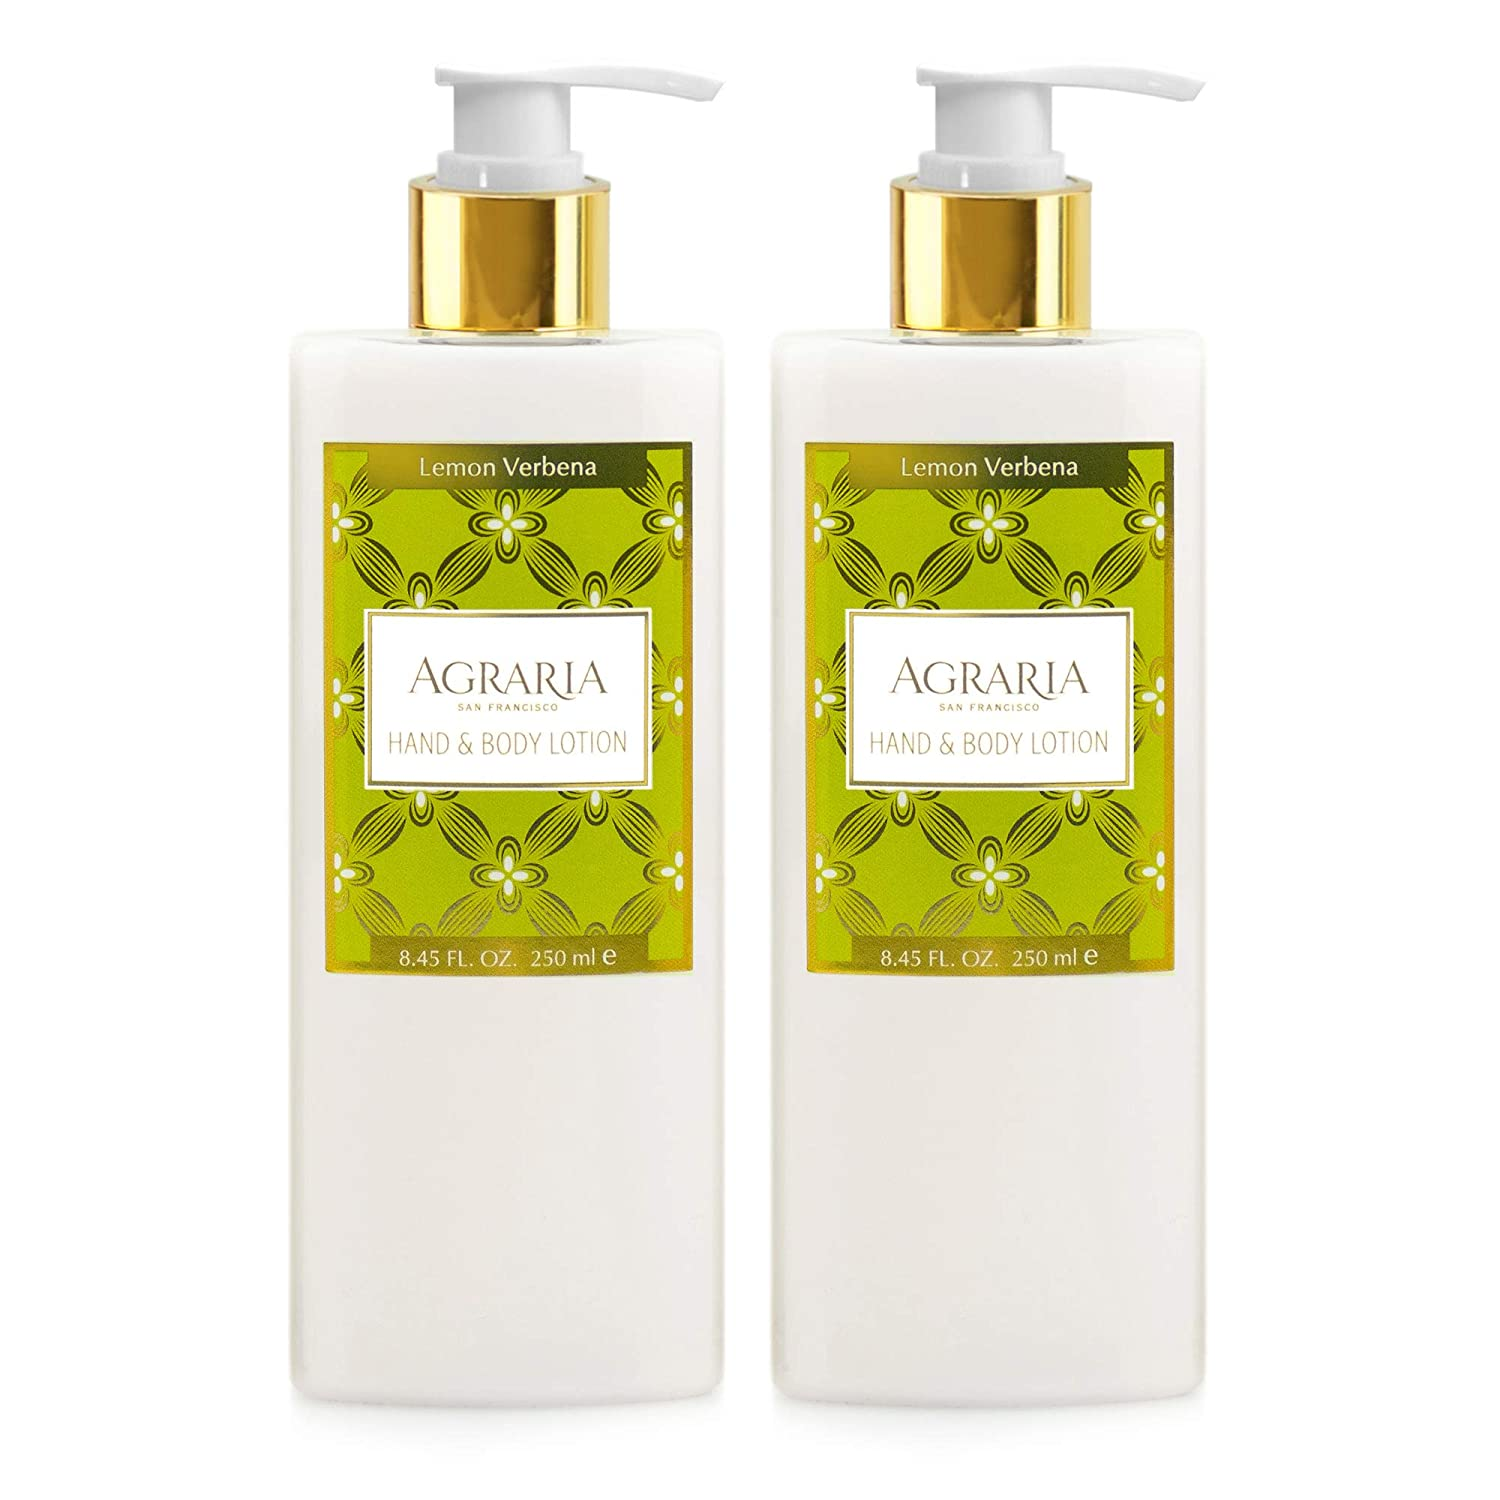 AGRARIA Lemon Verbena Hand and Body Lotion Duo